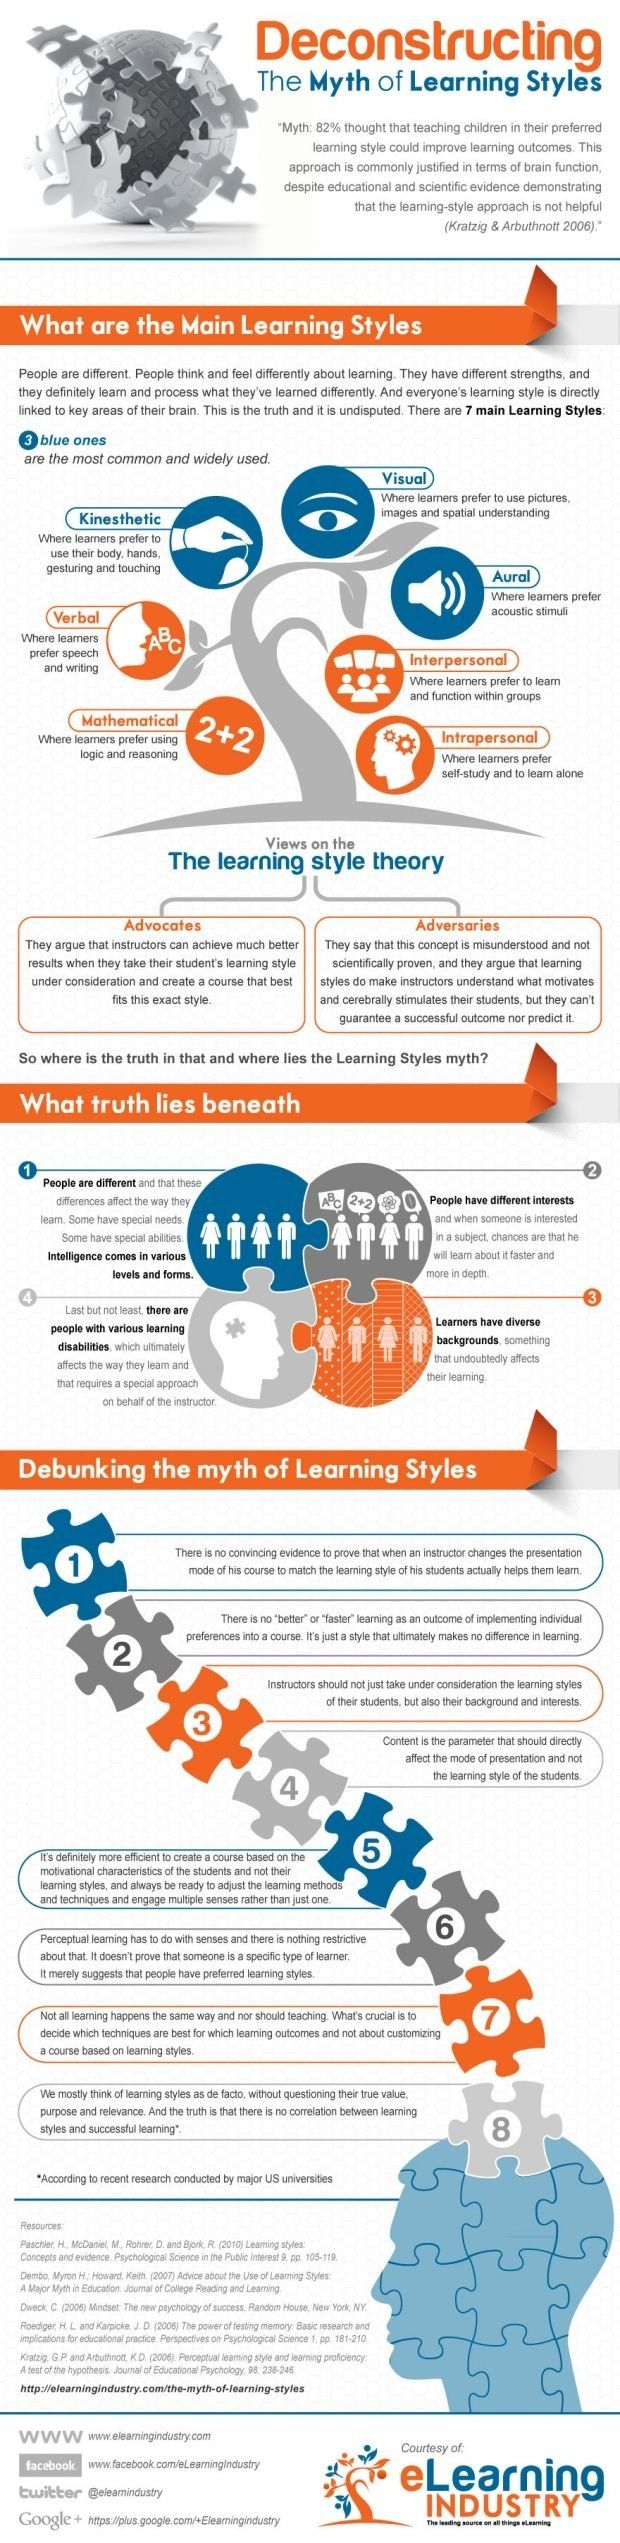 theories and learning styles on teaching practice The learning style of students and their practice teachers but also the in¯uence of the predominant style of teachers within the academic institutions too, encouraging the student to capitalise on learning opportunities available to them within the placement setting.